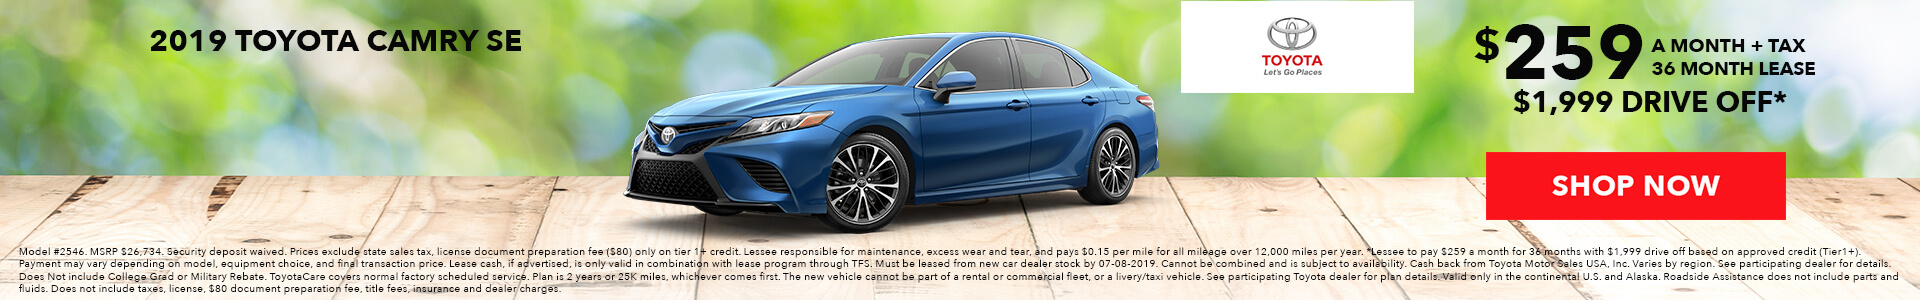 Toyota Camry $259 Lease